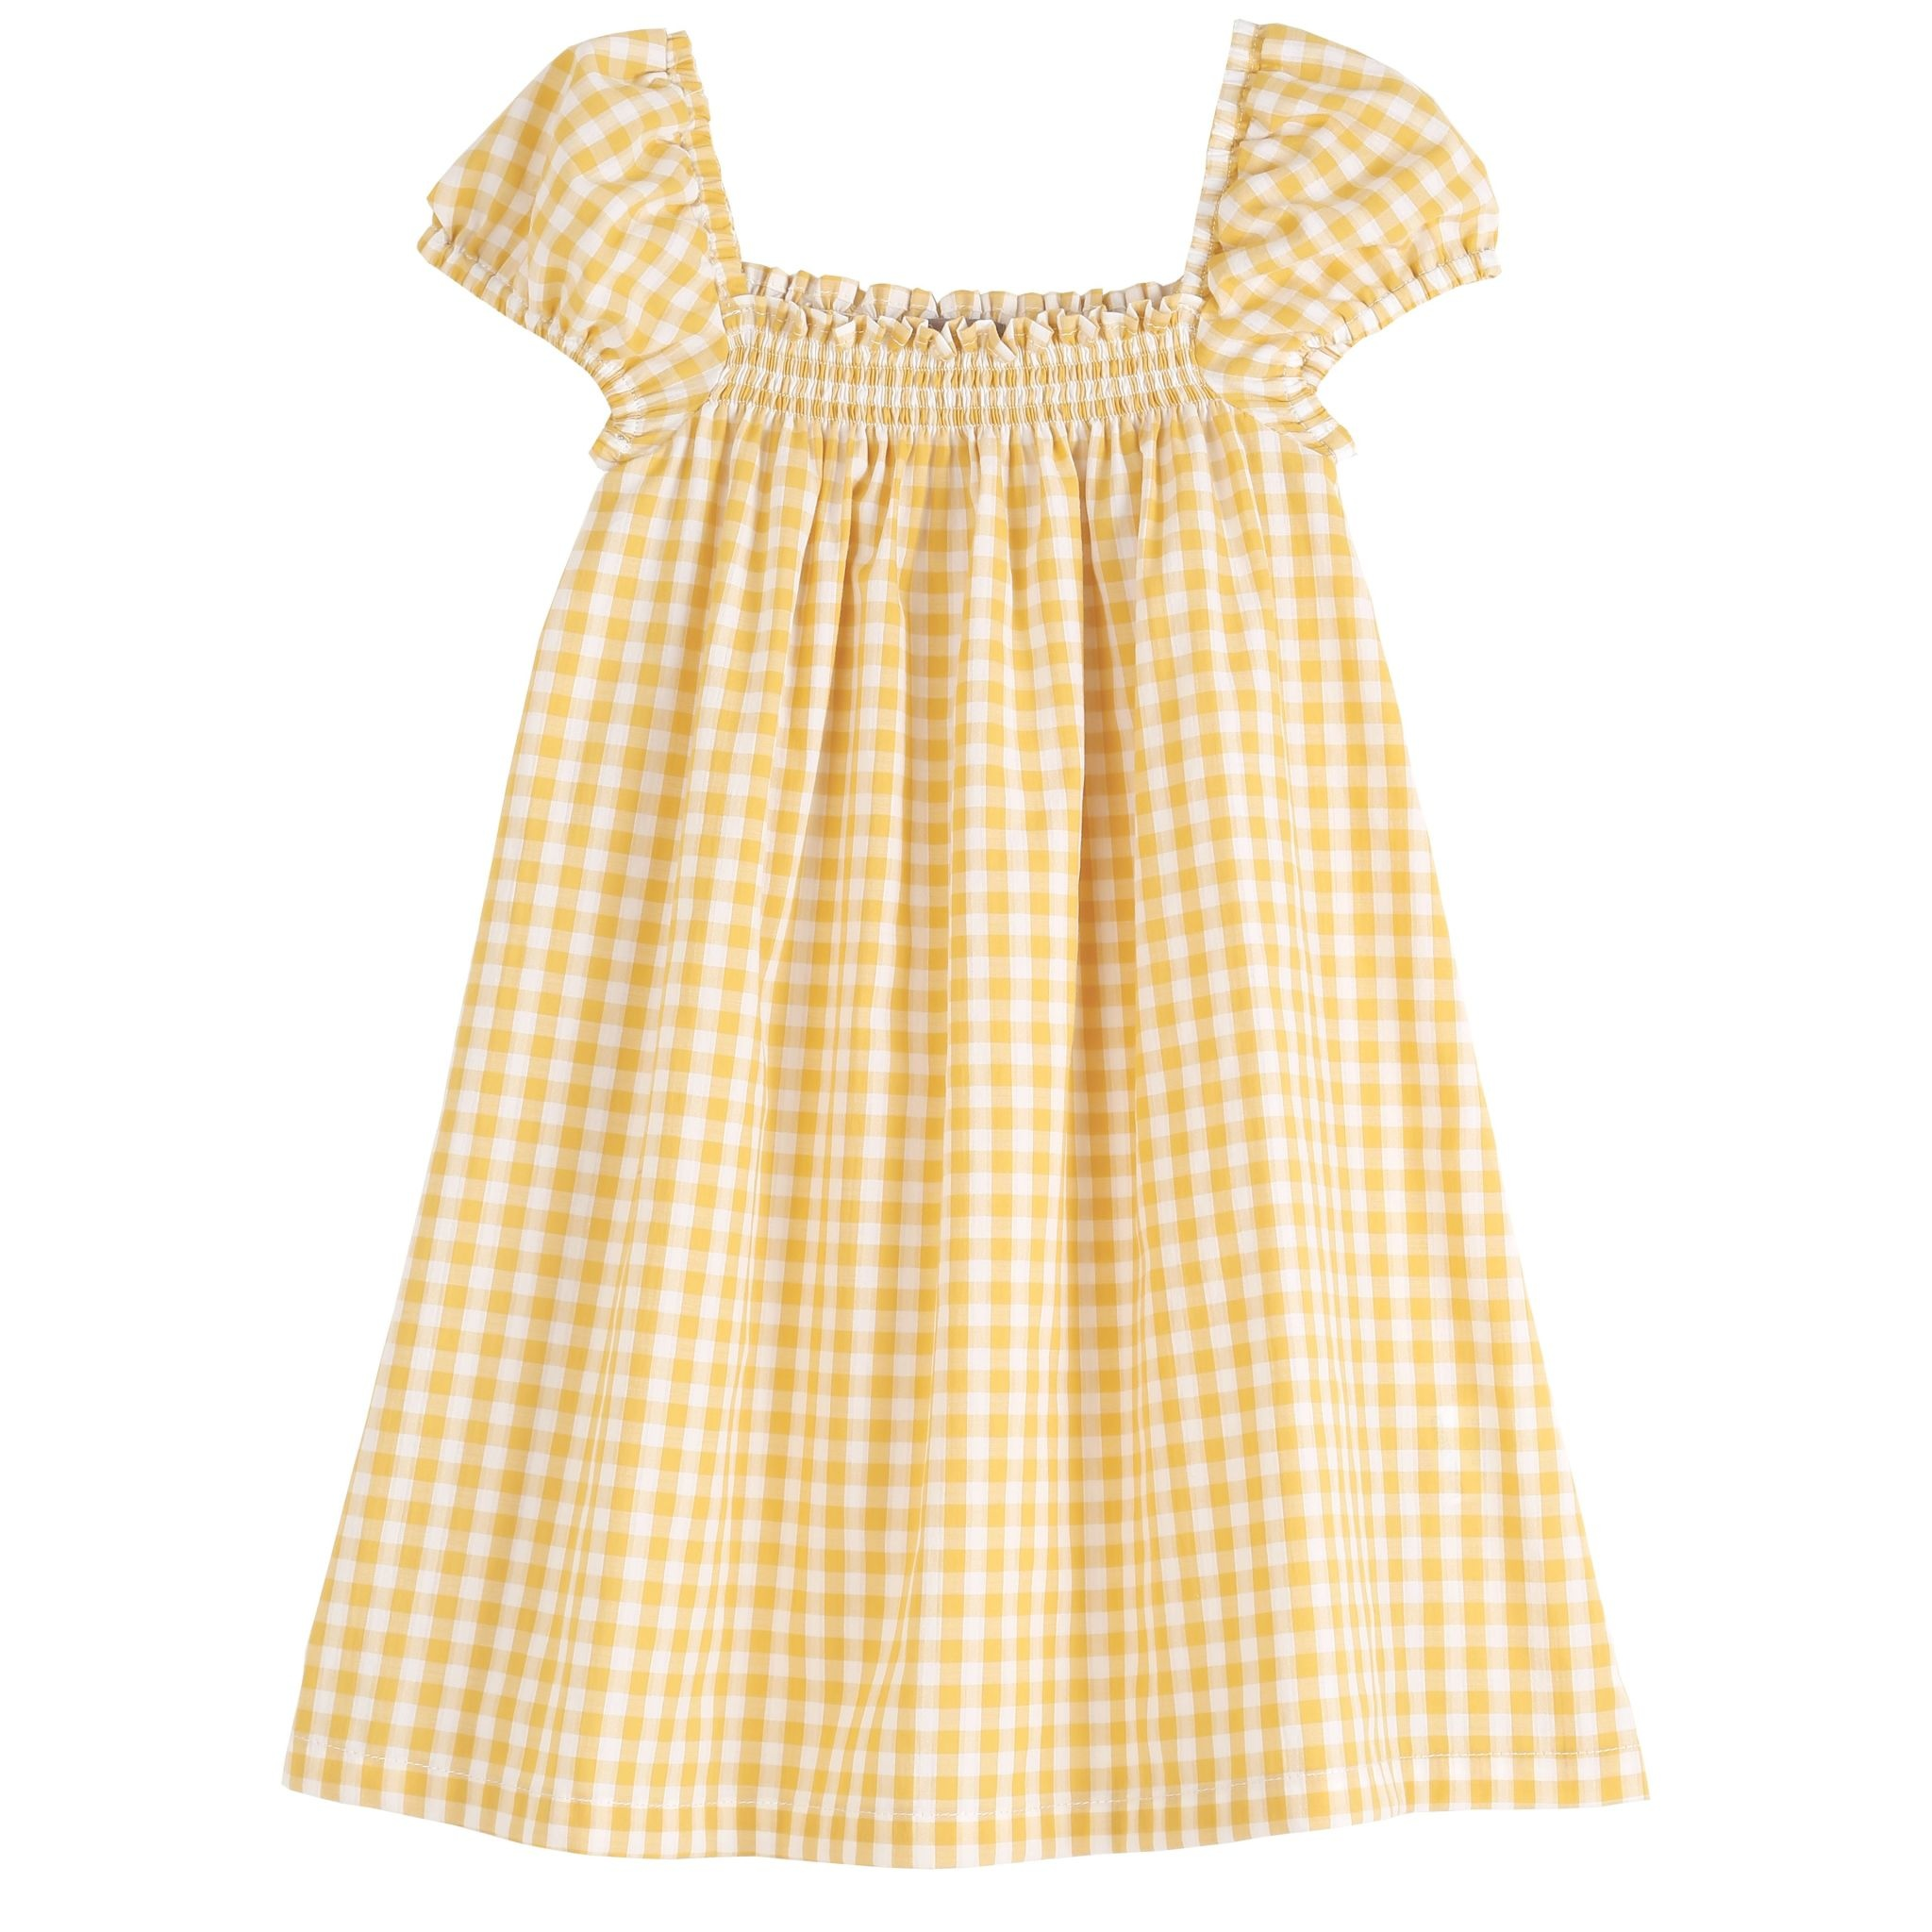 EMILIE ET IDA Yellow Gingham Dress